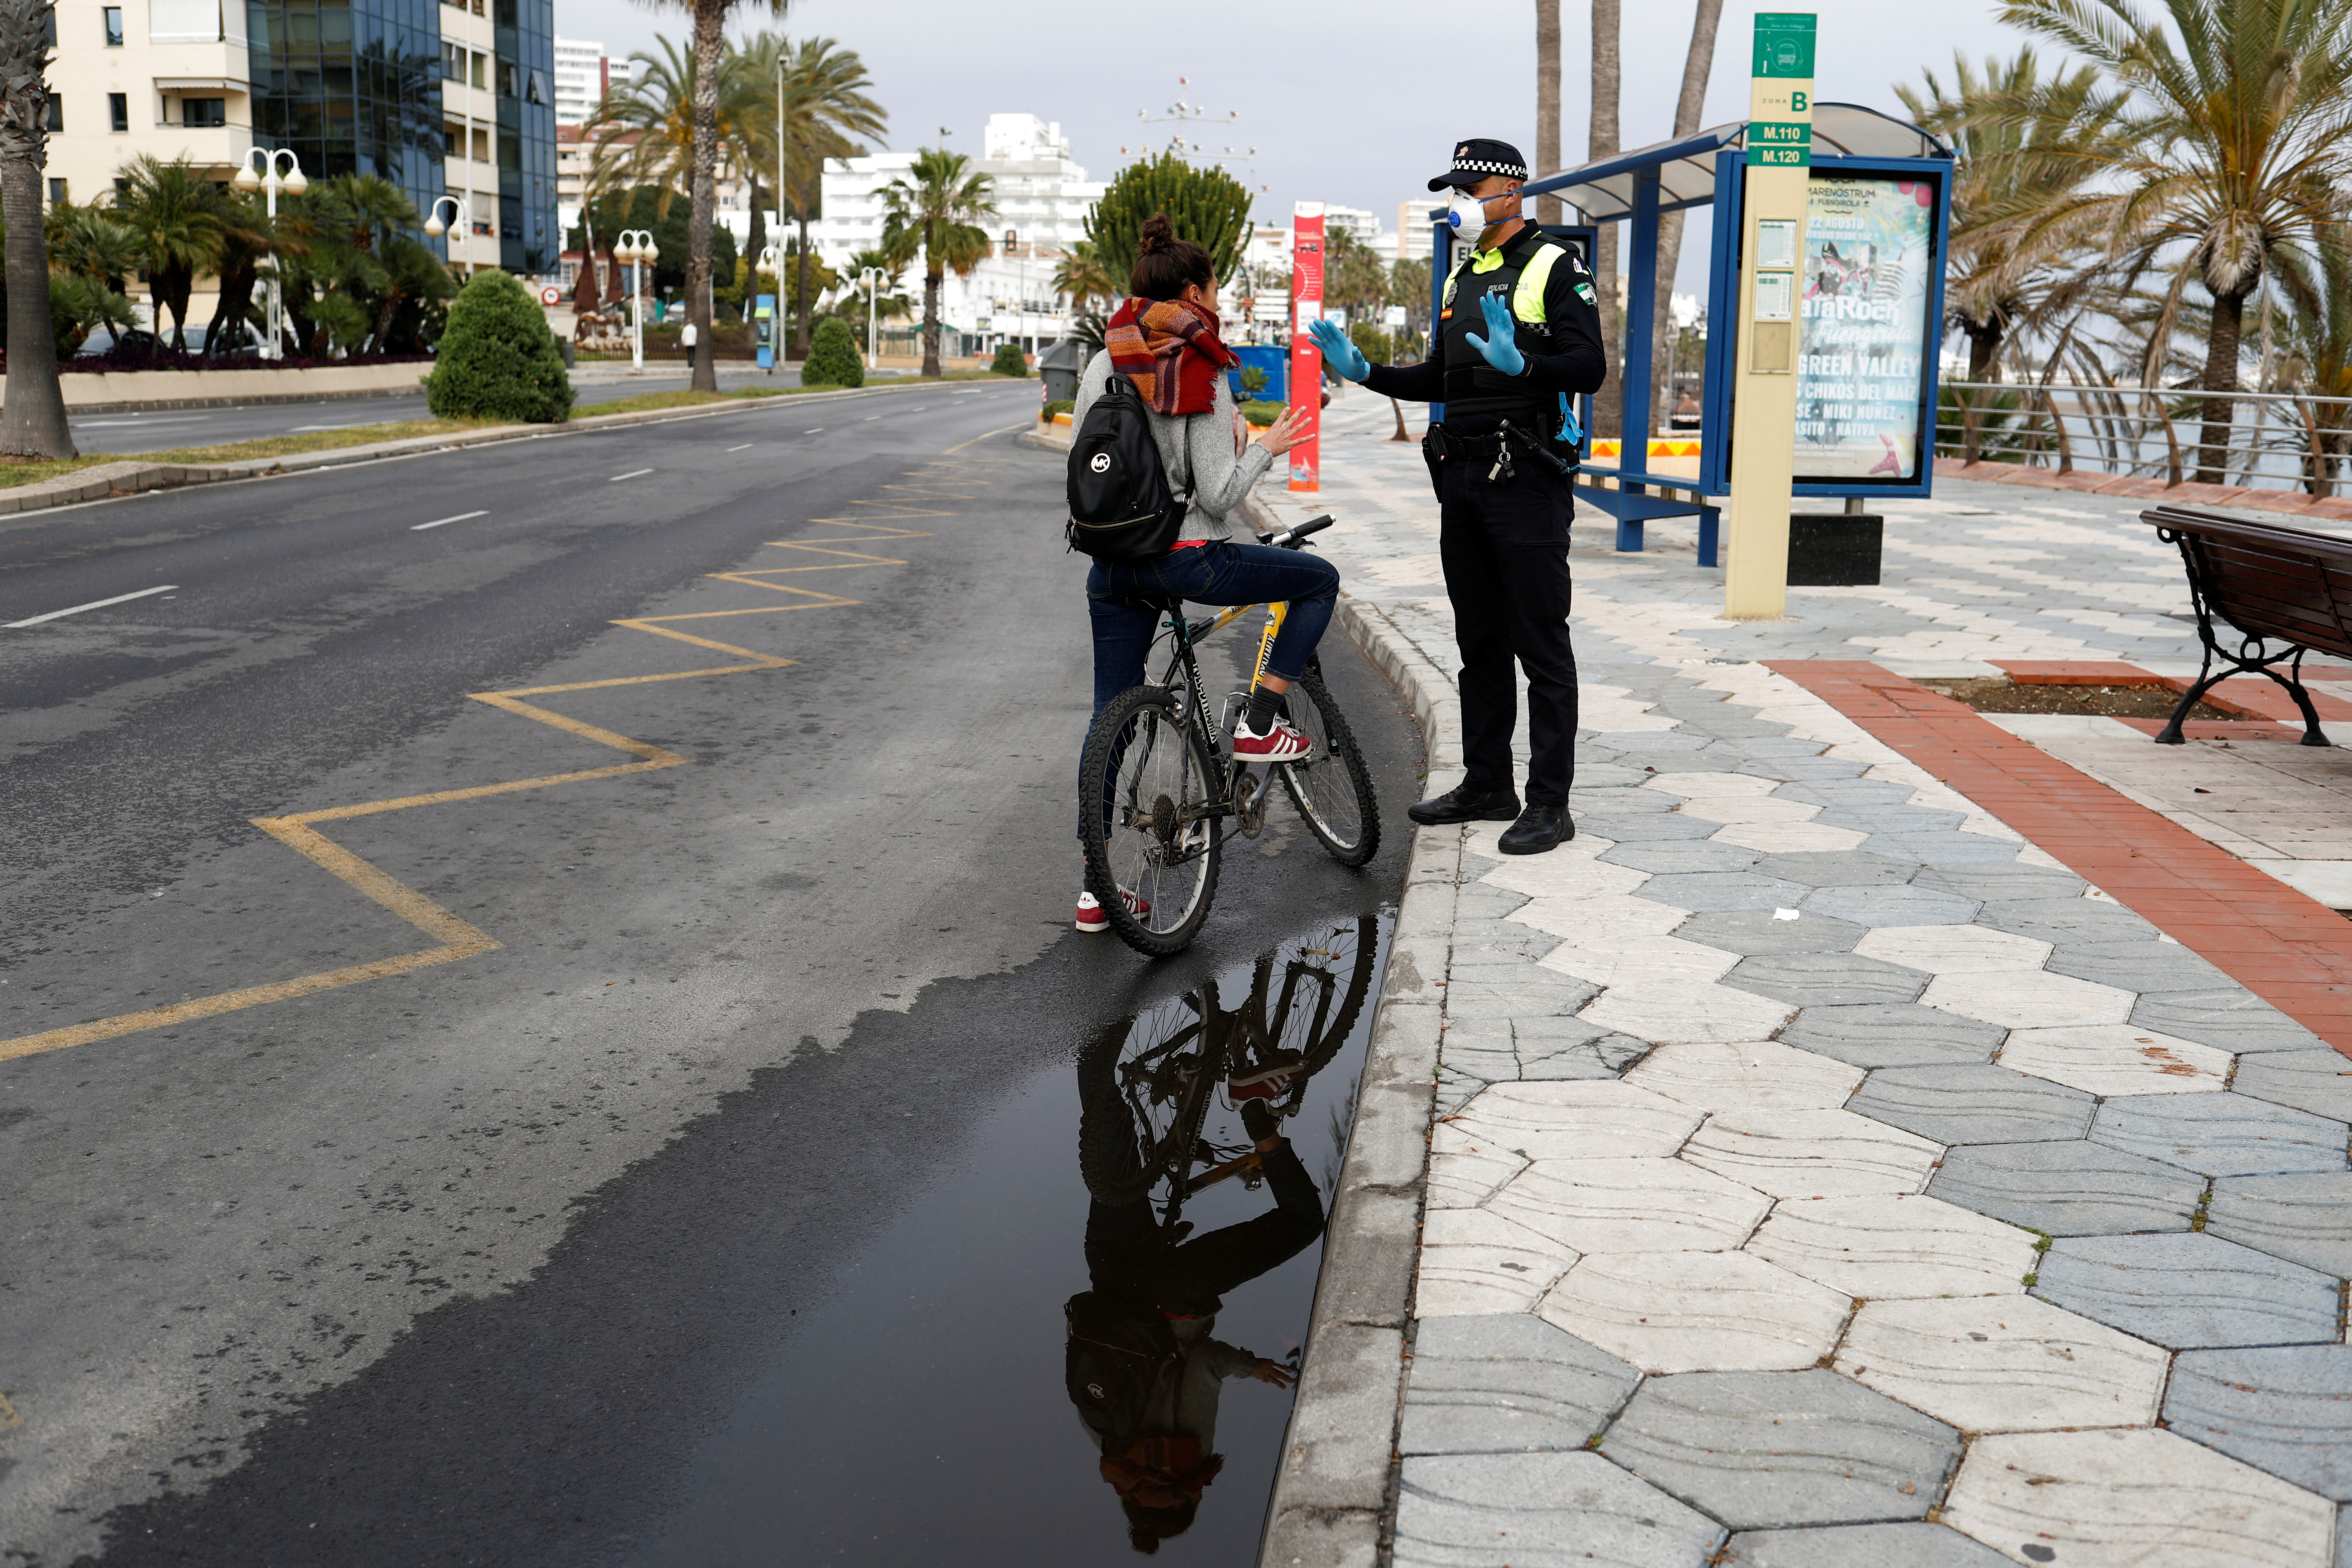 Rebecca Testa, 30, from Italy, asks a police officer if she can go back to Italy by car after she lost her job in Spain, during a partial lockdown as part of a 15-day state of emergency to combat the coronavirus outbreak in Benalmadena, on Costa del Sol, southern Spain, March 15, 2020.